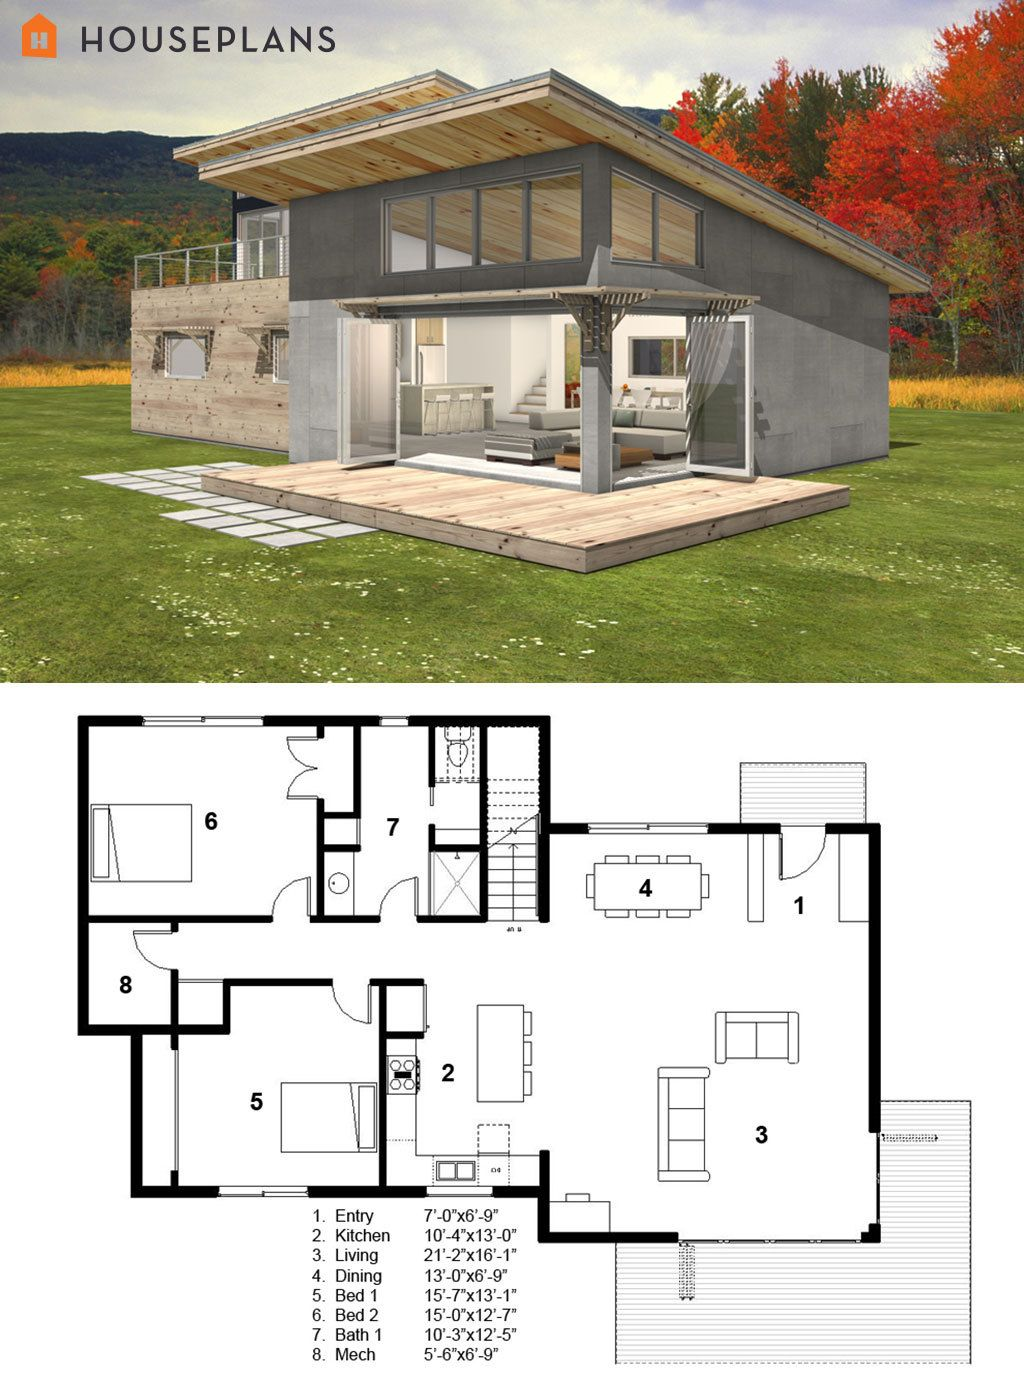 Modern style house plan 3 beds baths 2115 sq ft for Contemporary home plans 2015